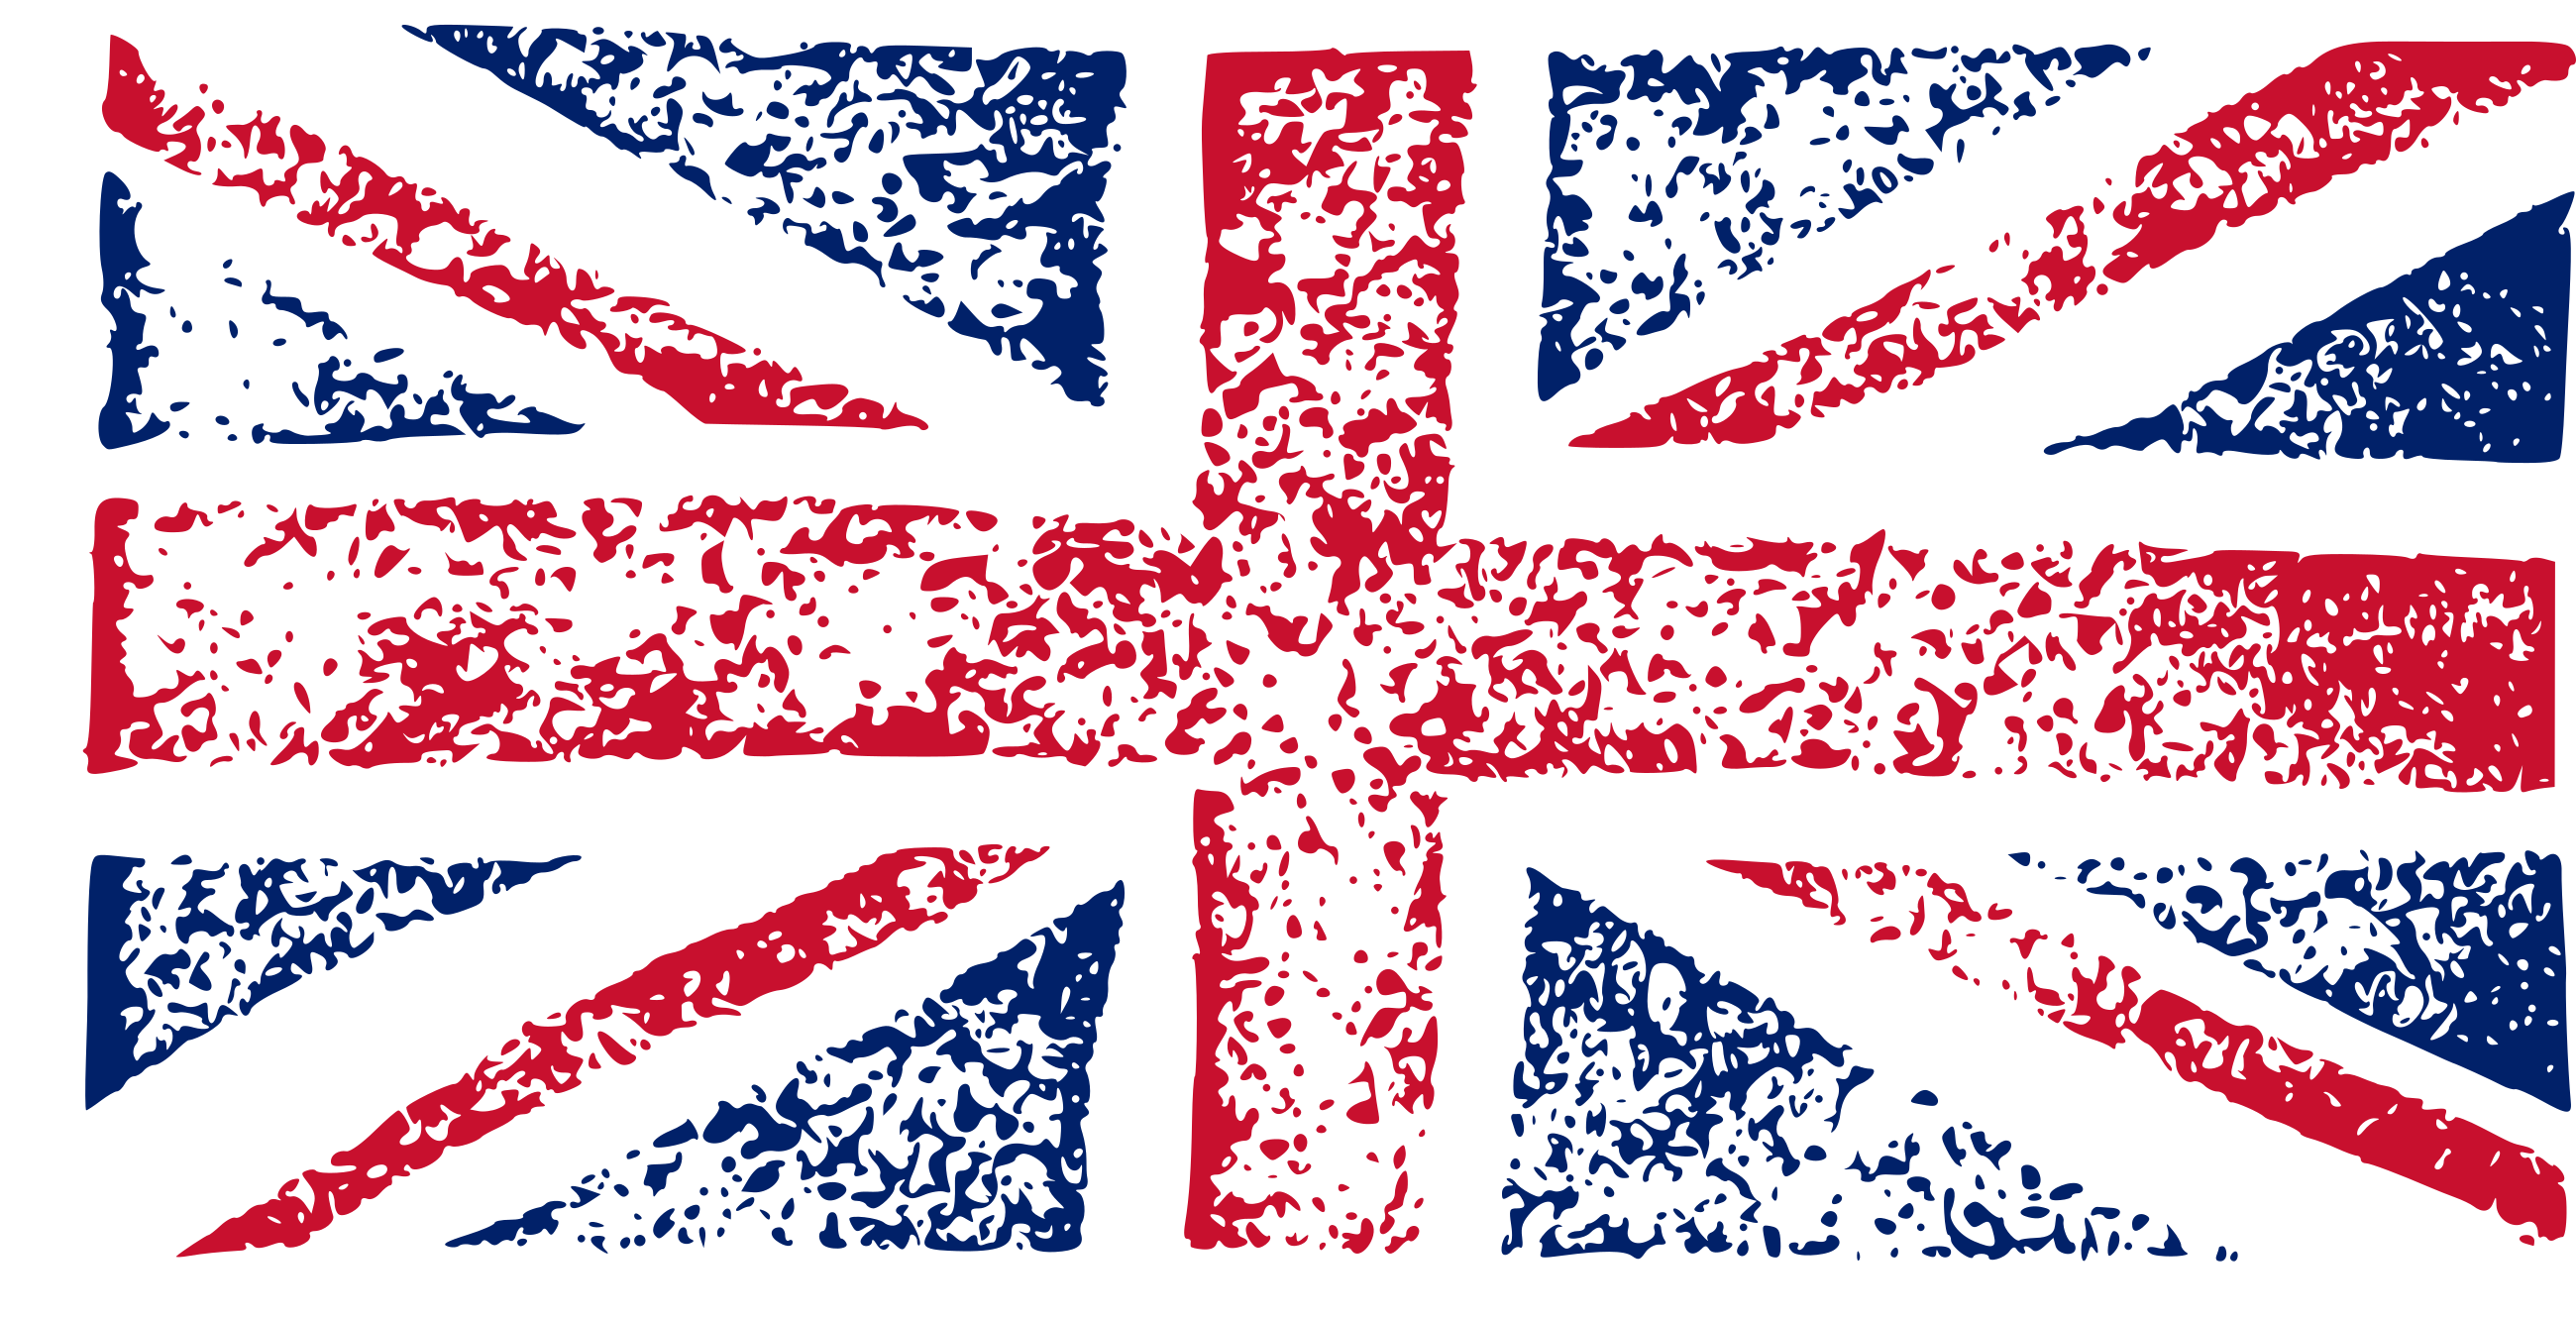 grunge-britain-uk-flag-7.png